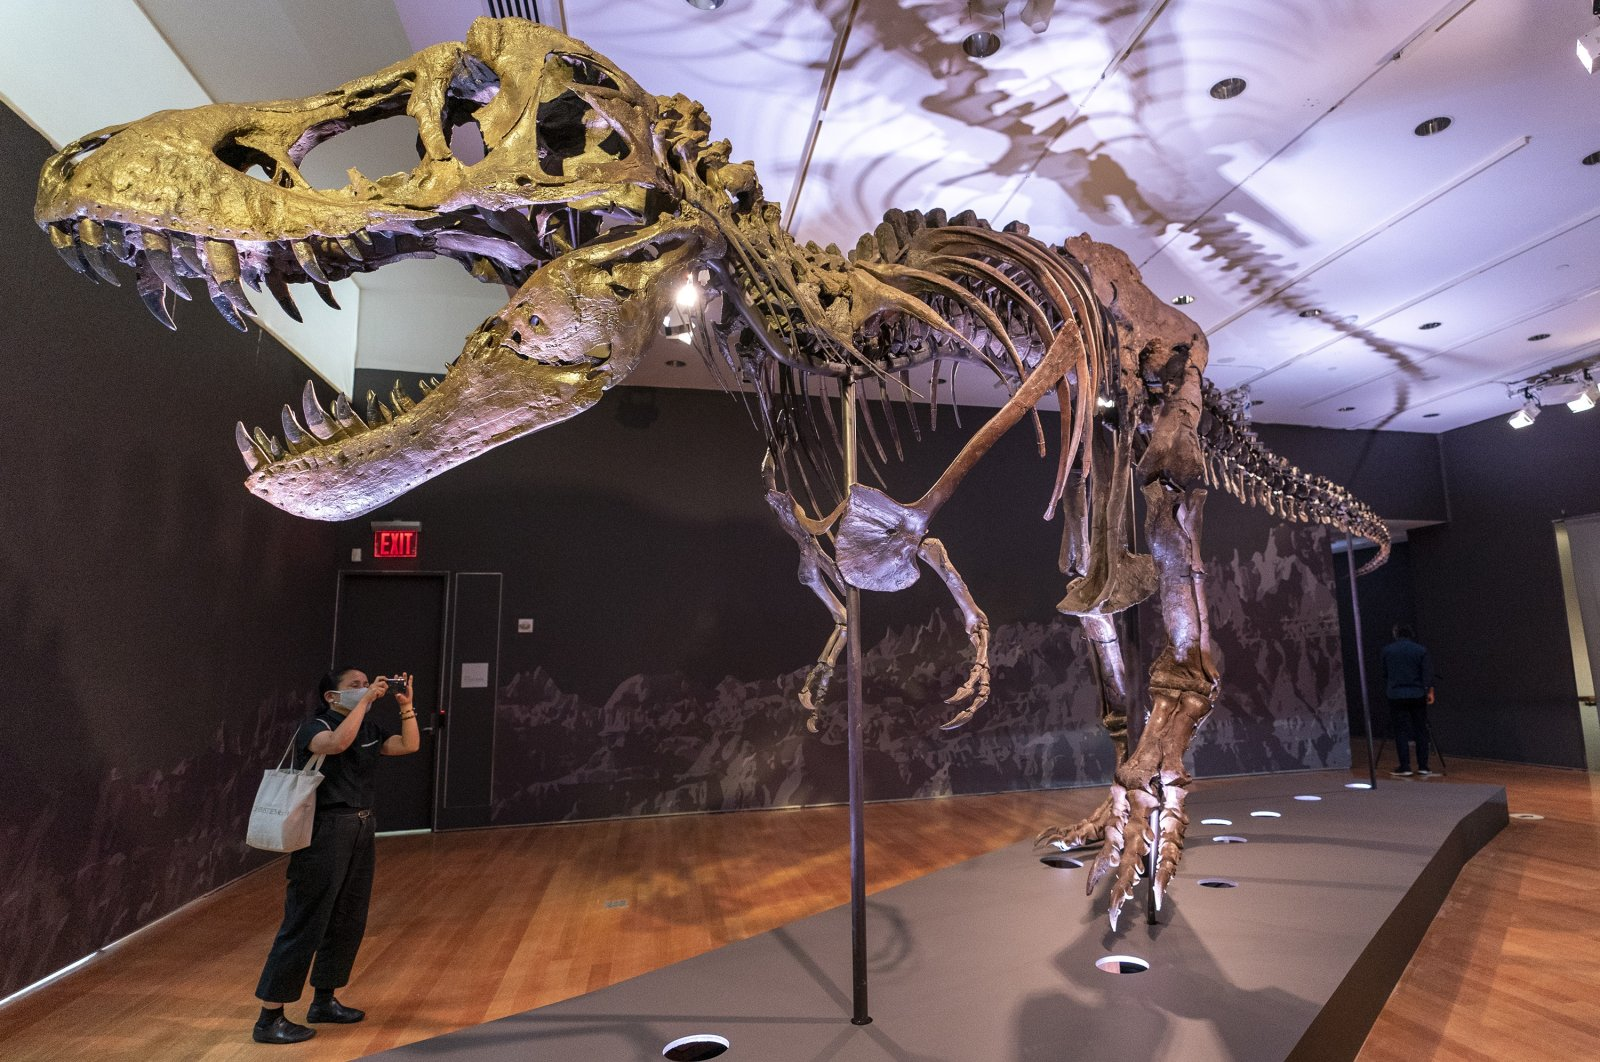 Stan, one of the largest and most complete Tyrannosaurus rex fossils ever discovered, is on display at Christie's in New York, U.S., Sept. 15, 2020. (AP Photo)